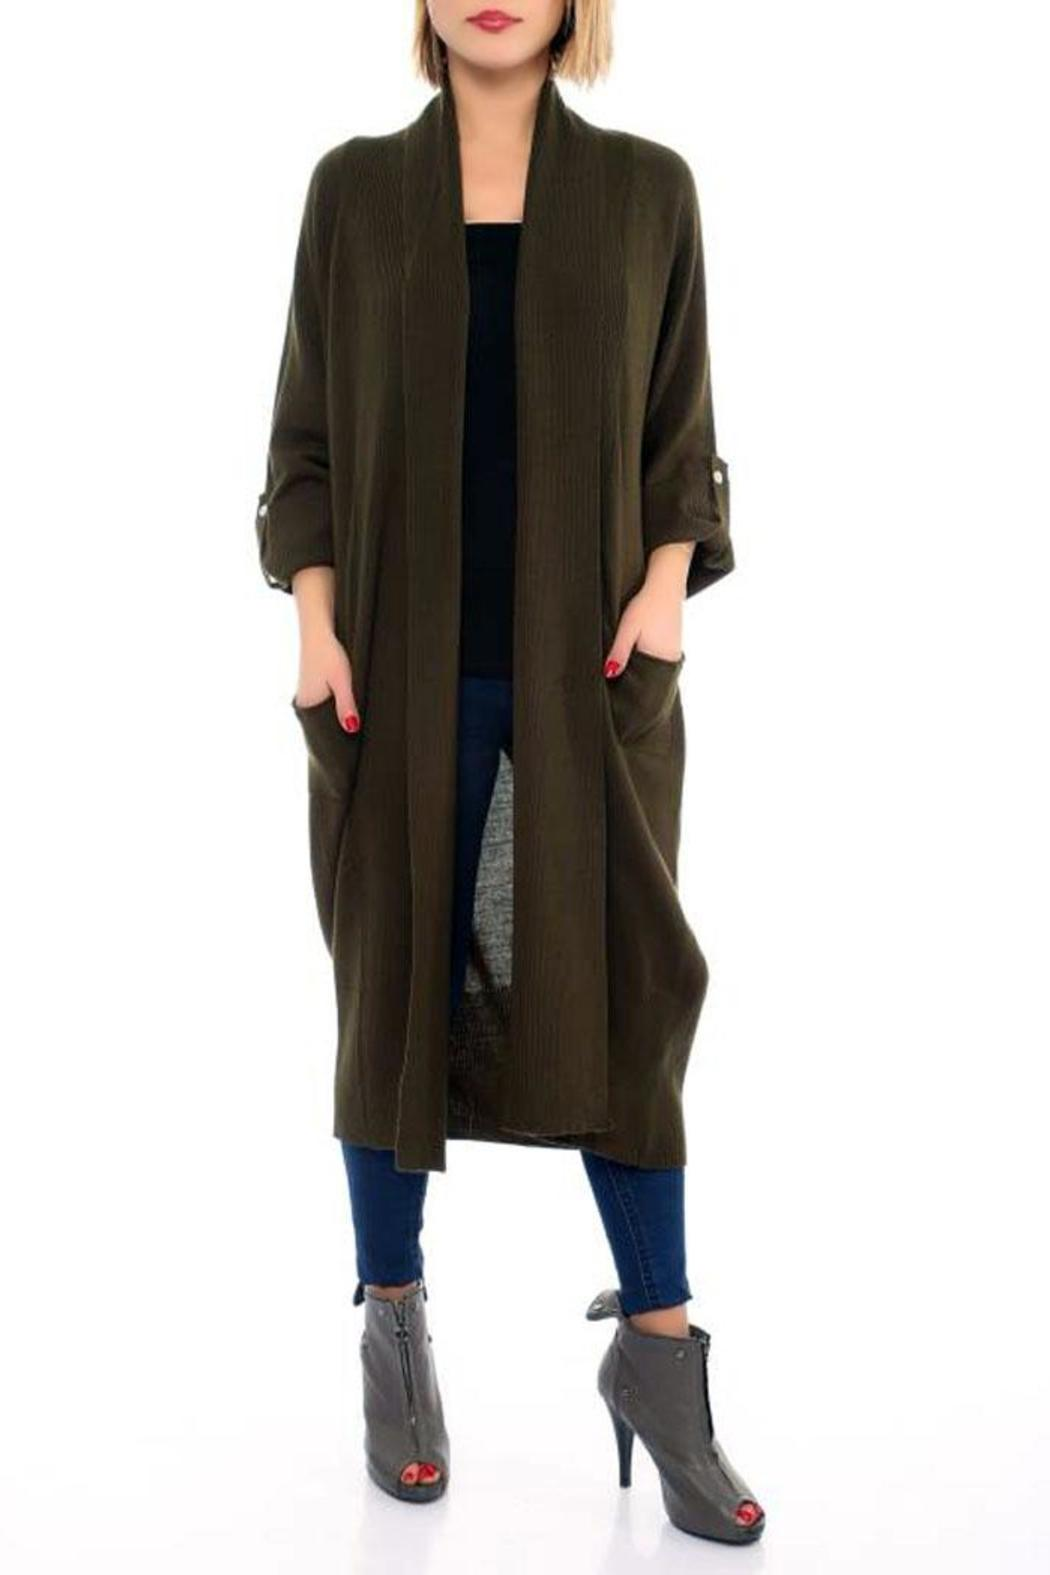 ad69a07e31 L adore Olive Open Front Cardigan from San Francisco by Marvy ...